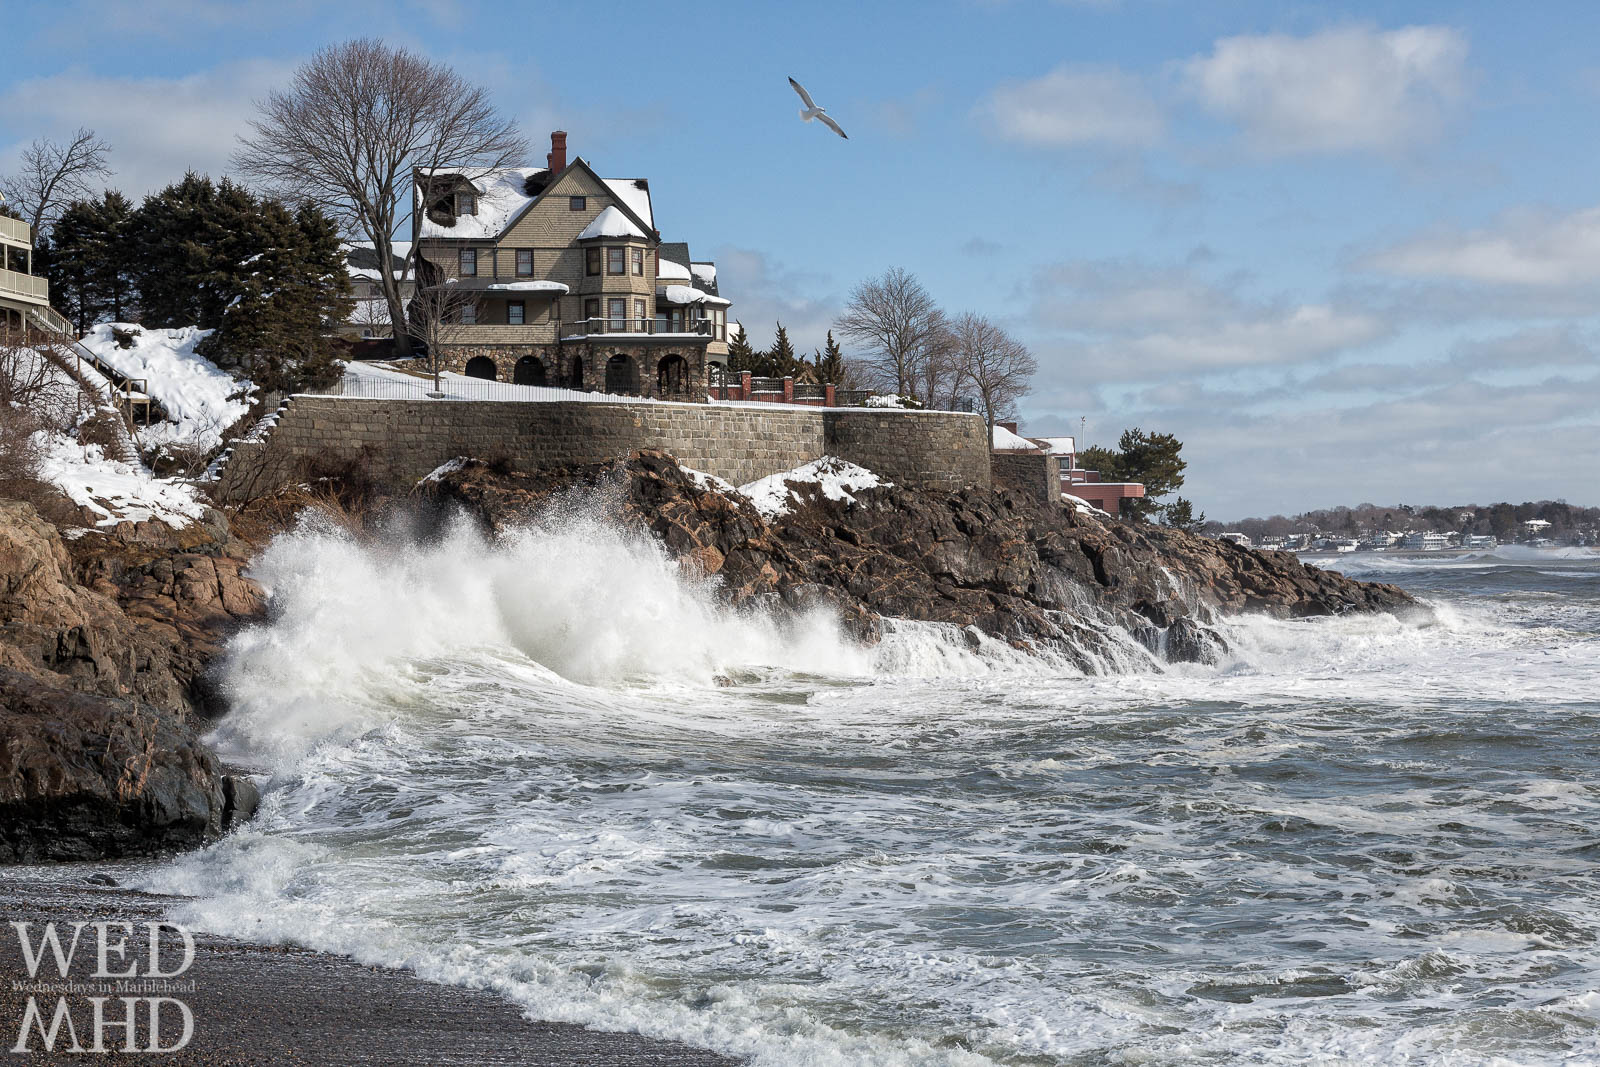 Greystone beach in Marblehead